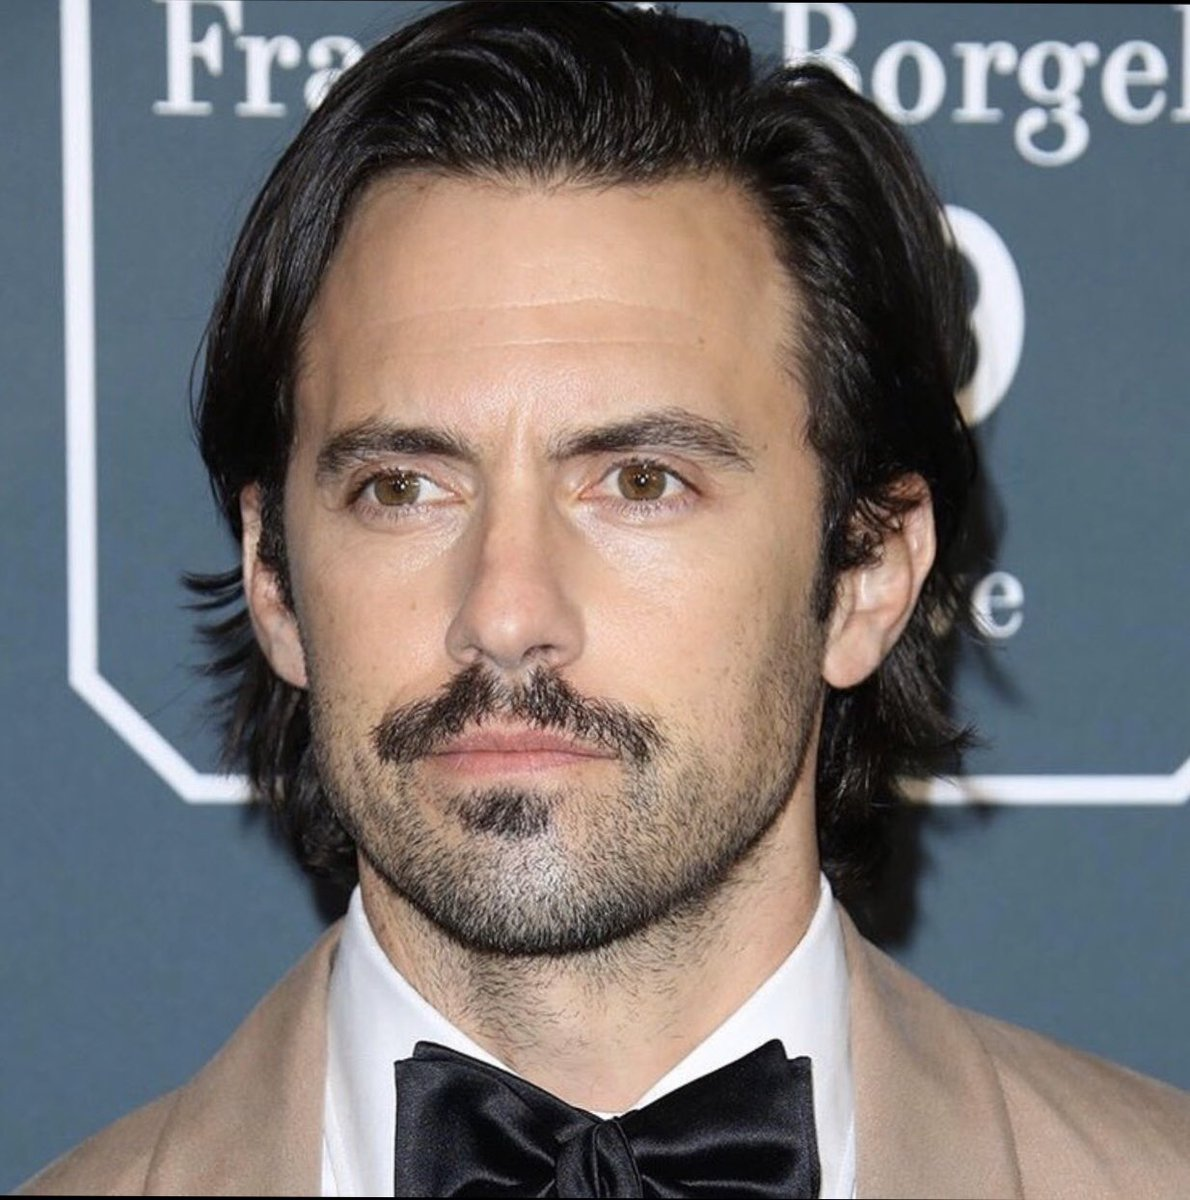 Thank you @MiloVentimiglia for being an amazing human! pic.twitter.com/mbzTrcUtLG